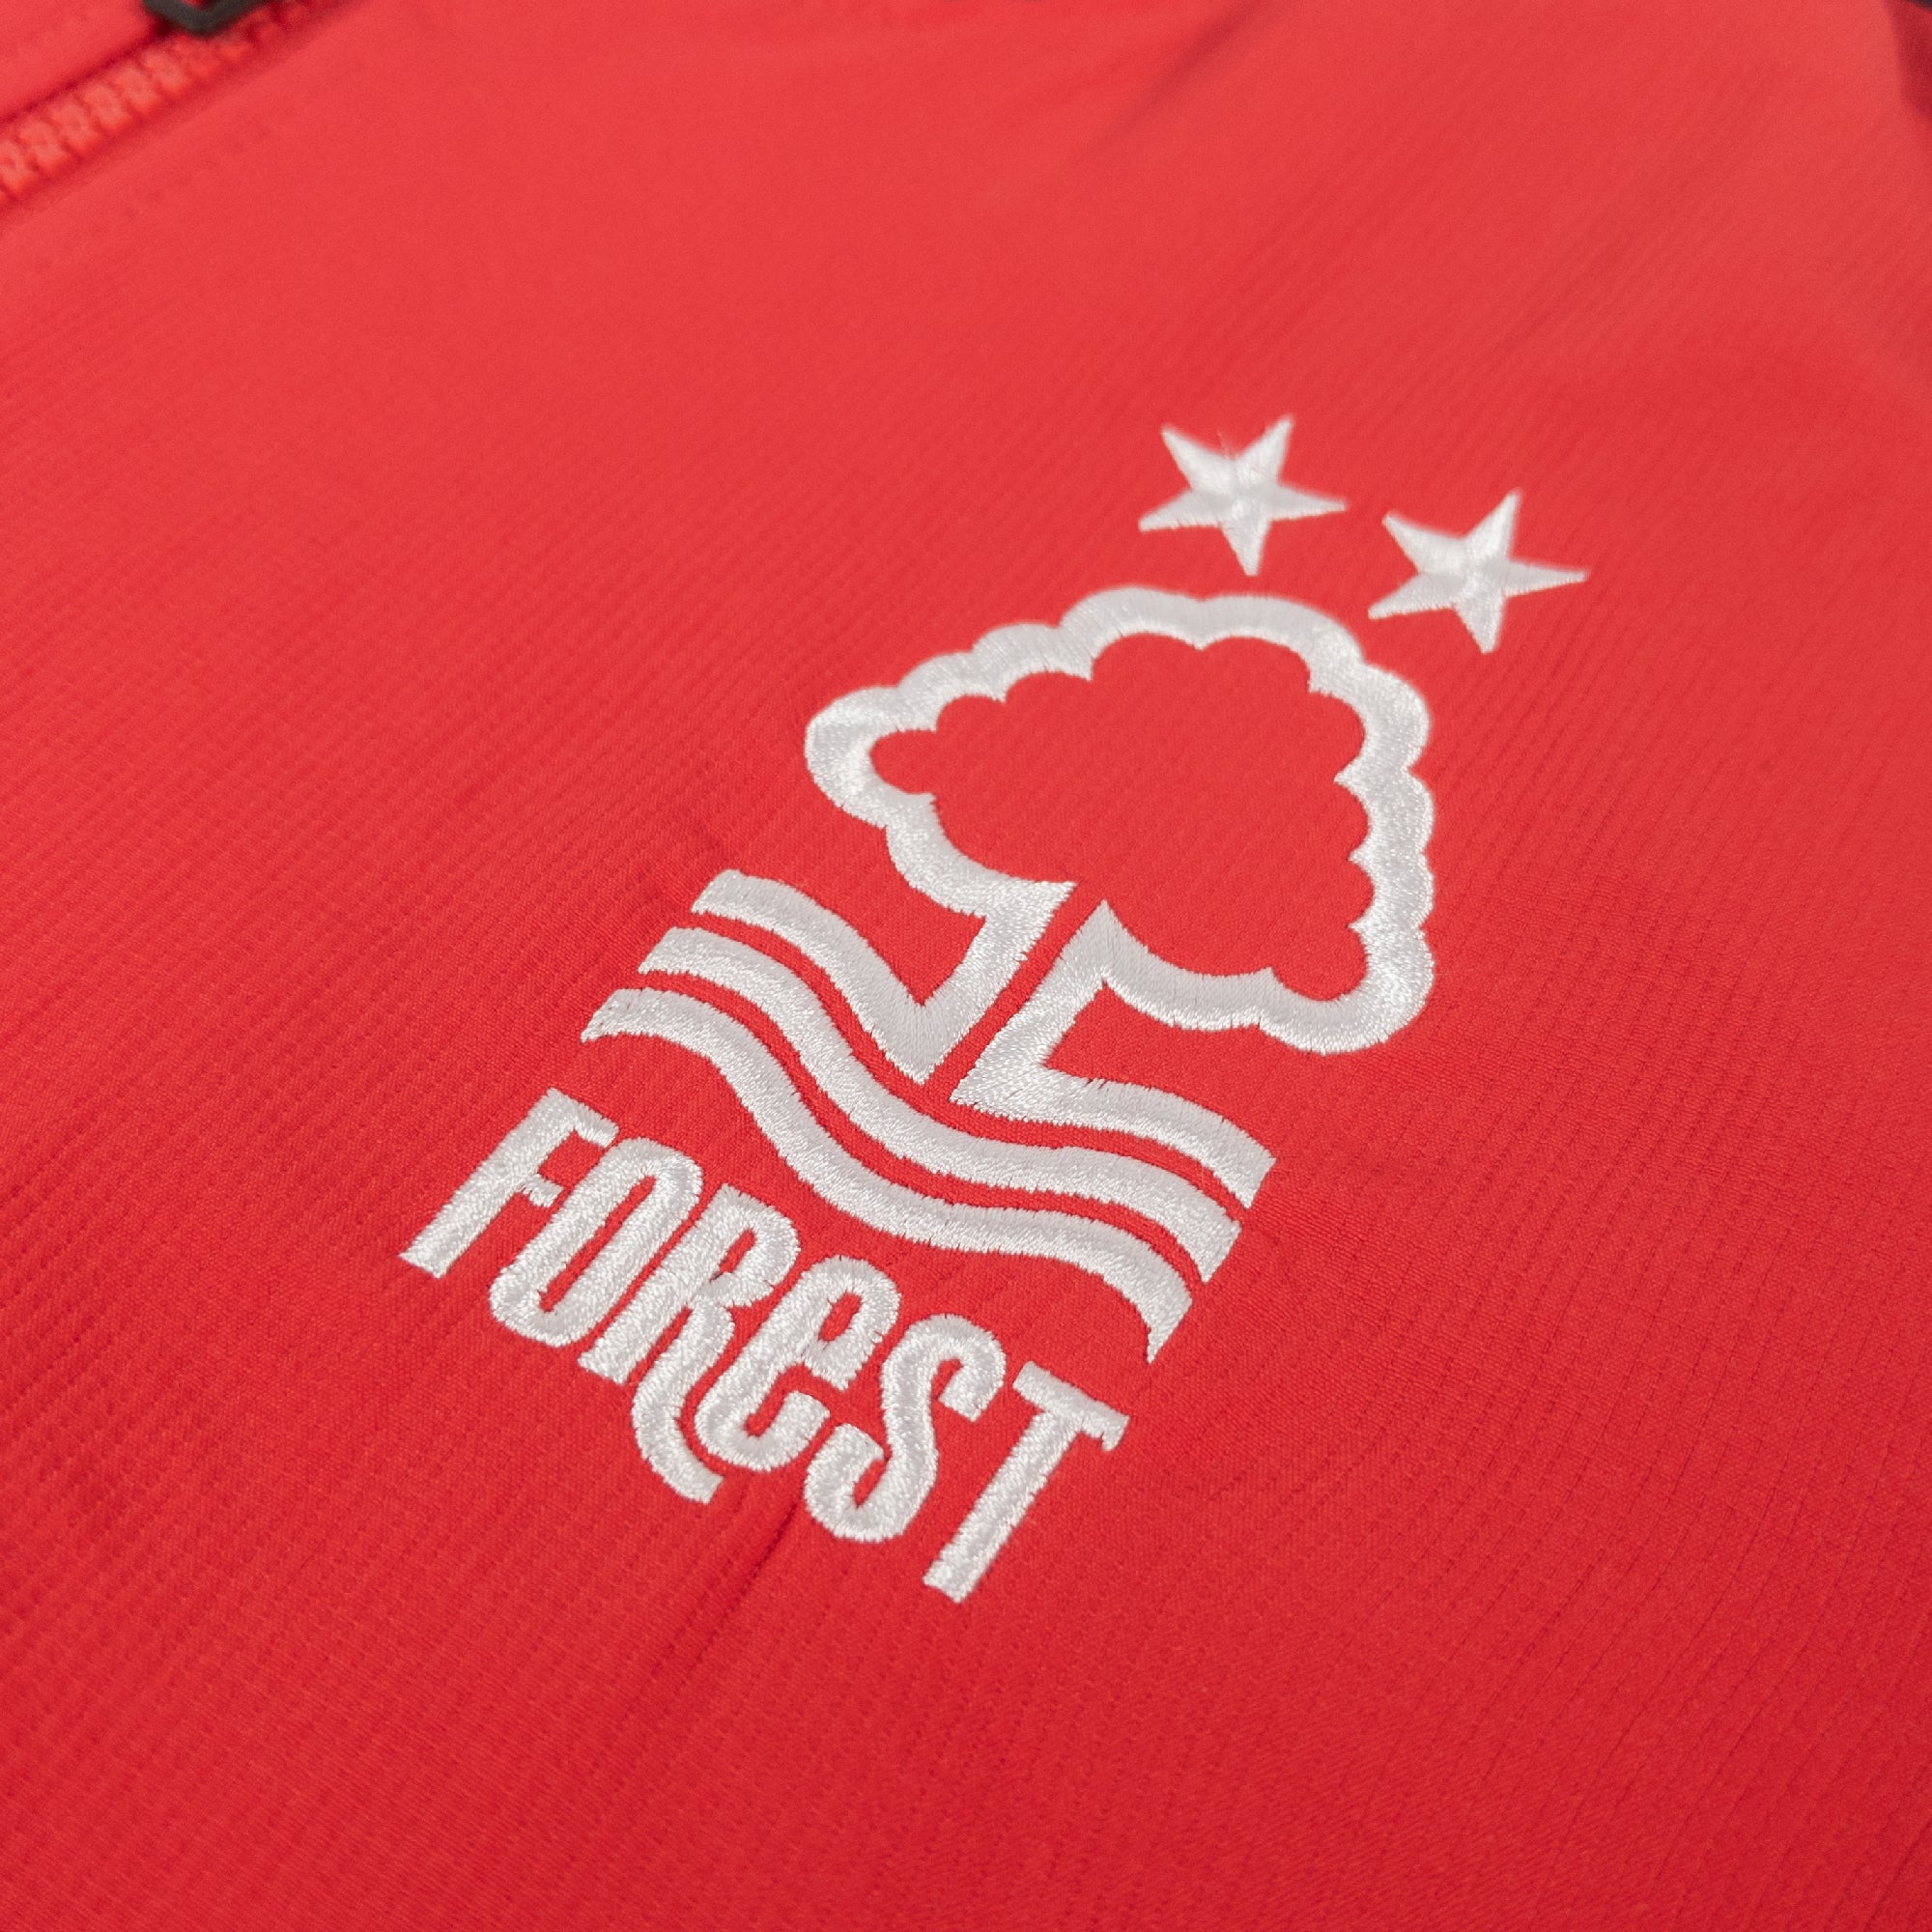 NFFC Mens Player Full Zip Travel Top 2020/21